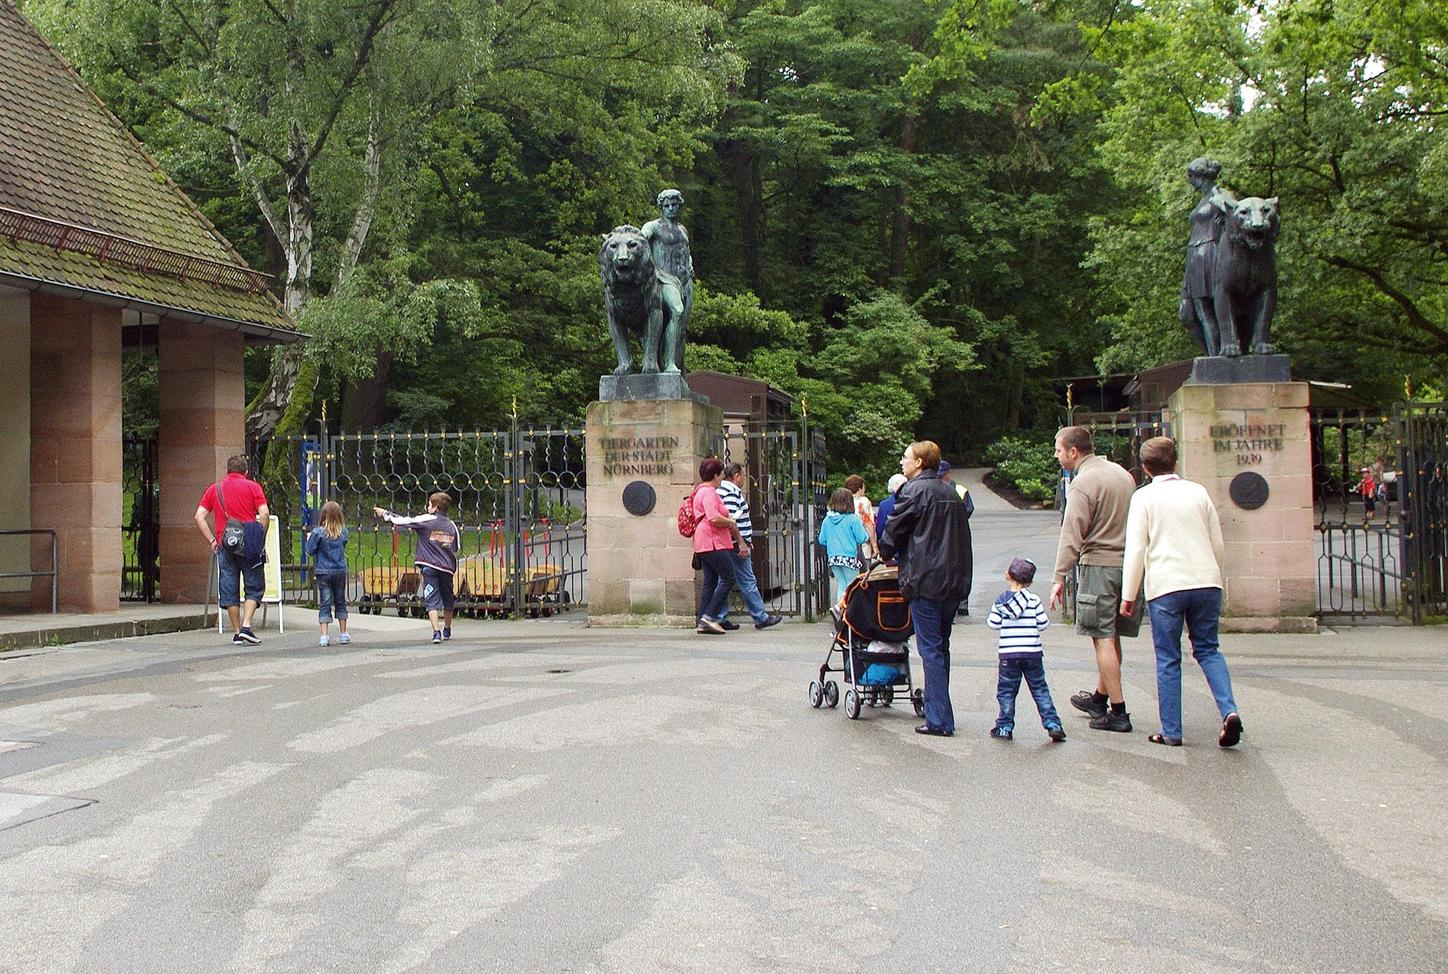 The picture shows visitors in front of the entrance to Nuremberg Zoo.